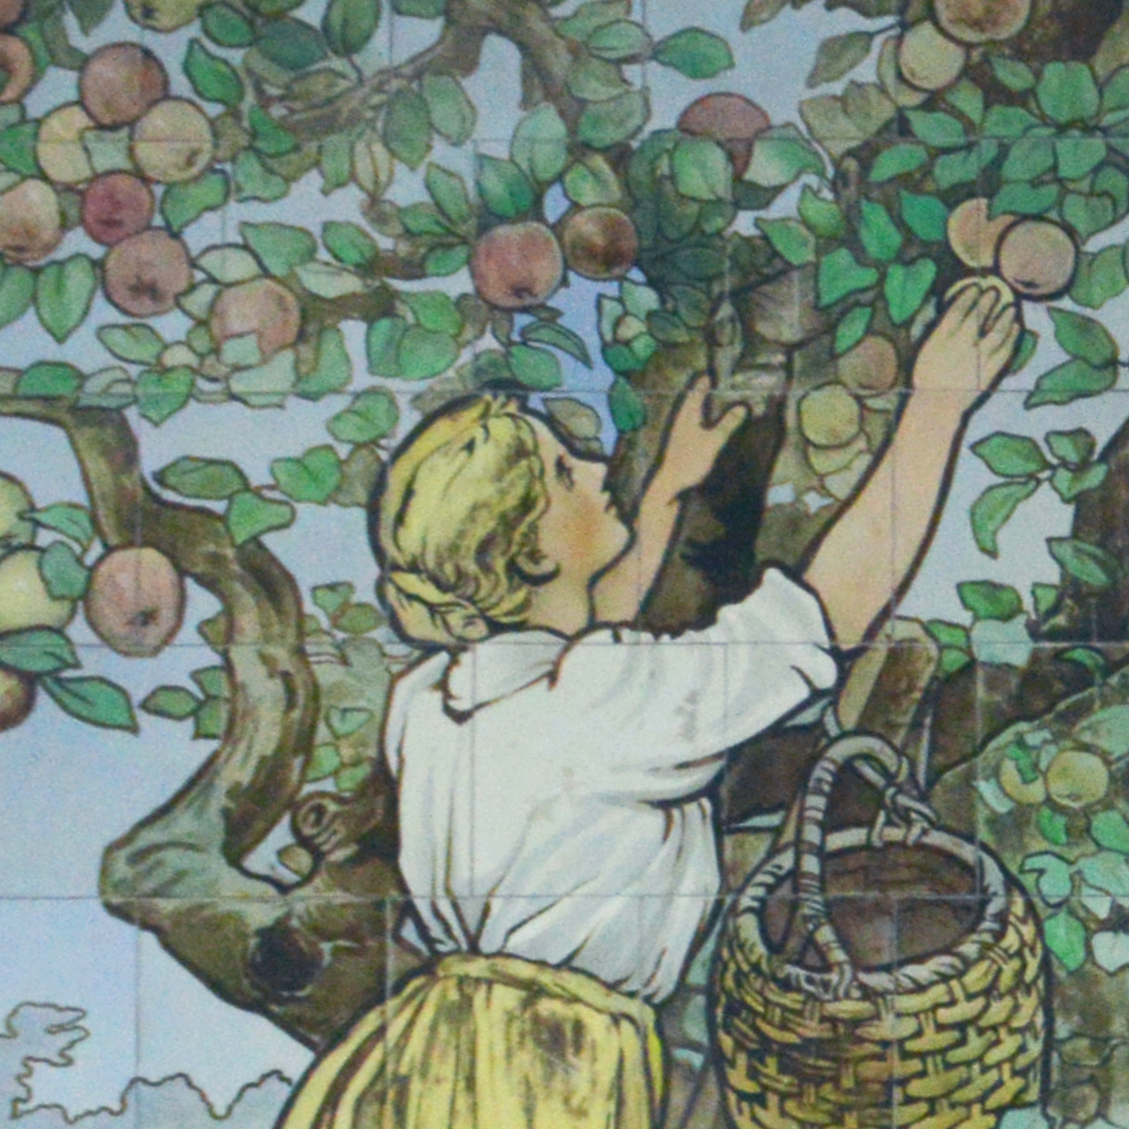 Charing Cross Hospital Original Tiles - drawing of a lady picking apples